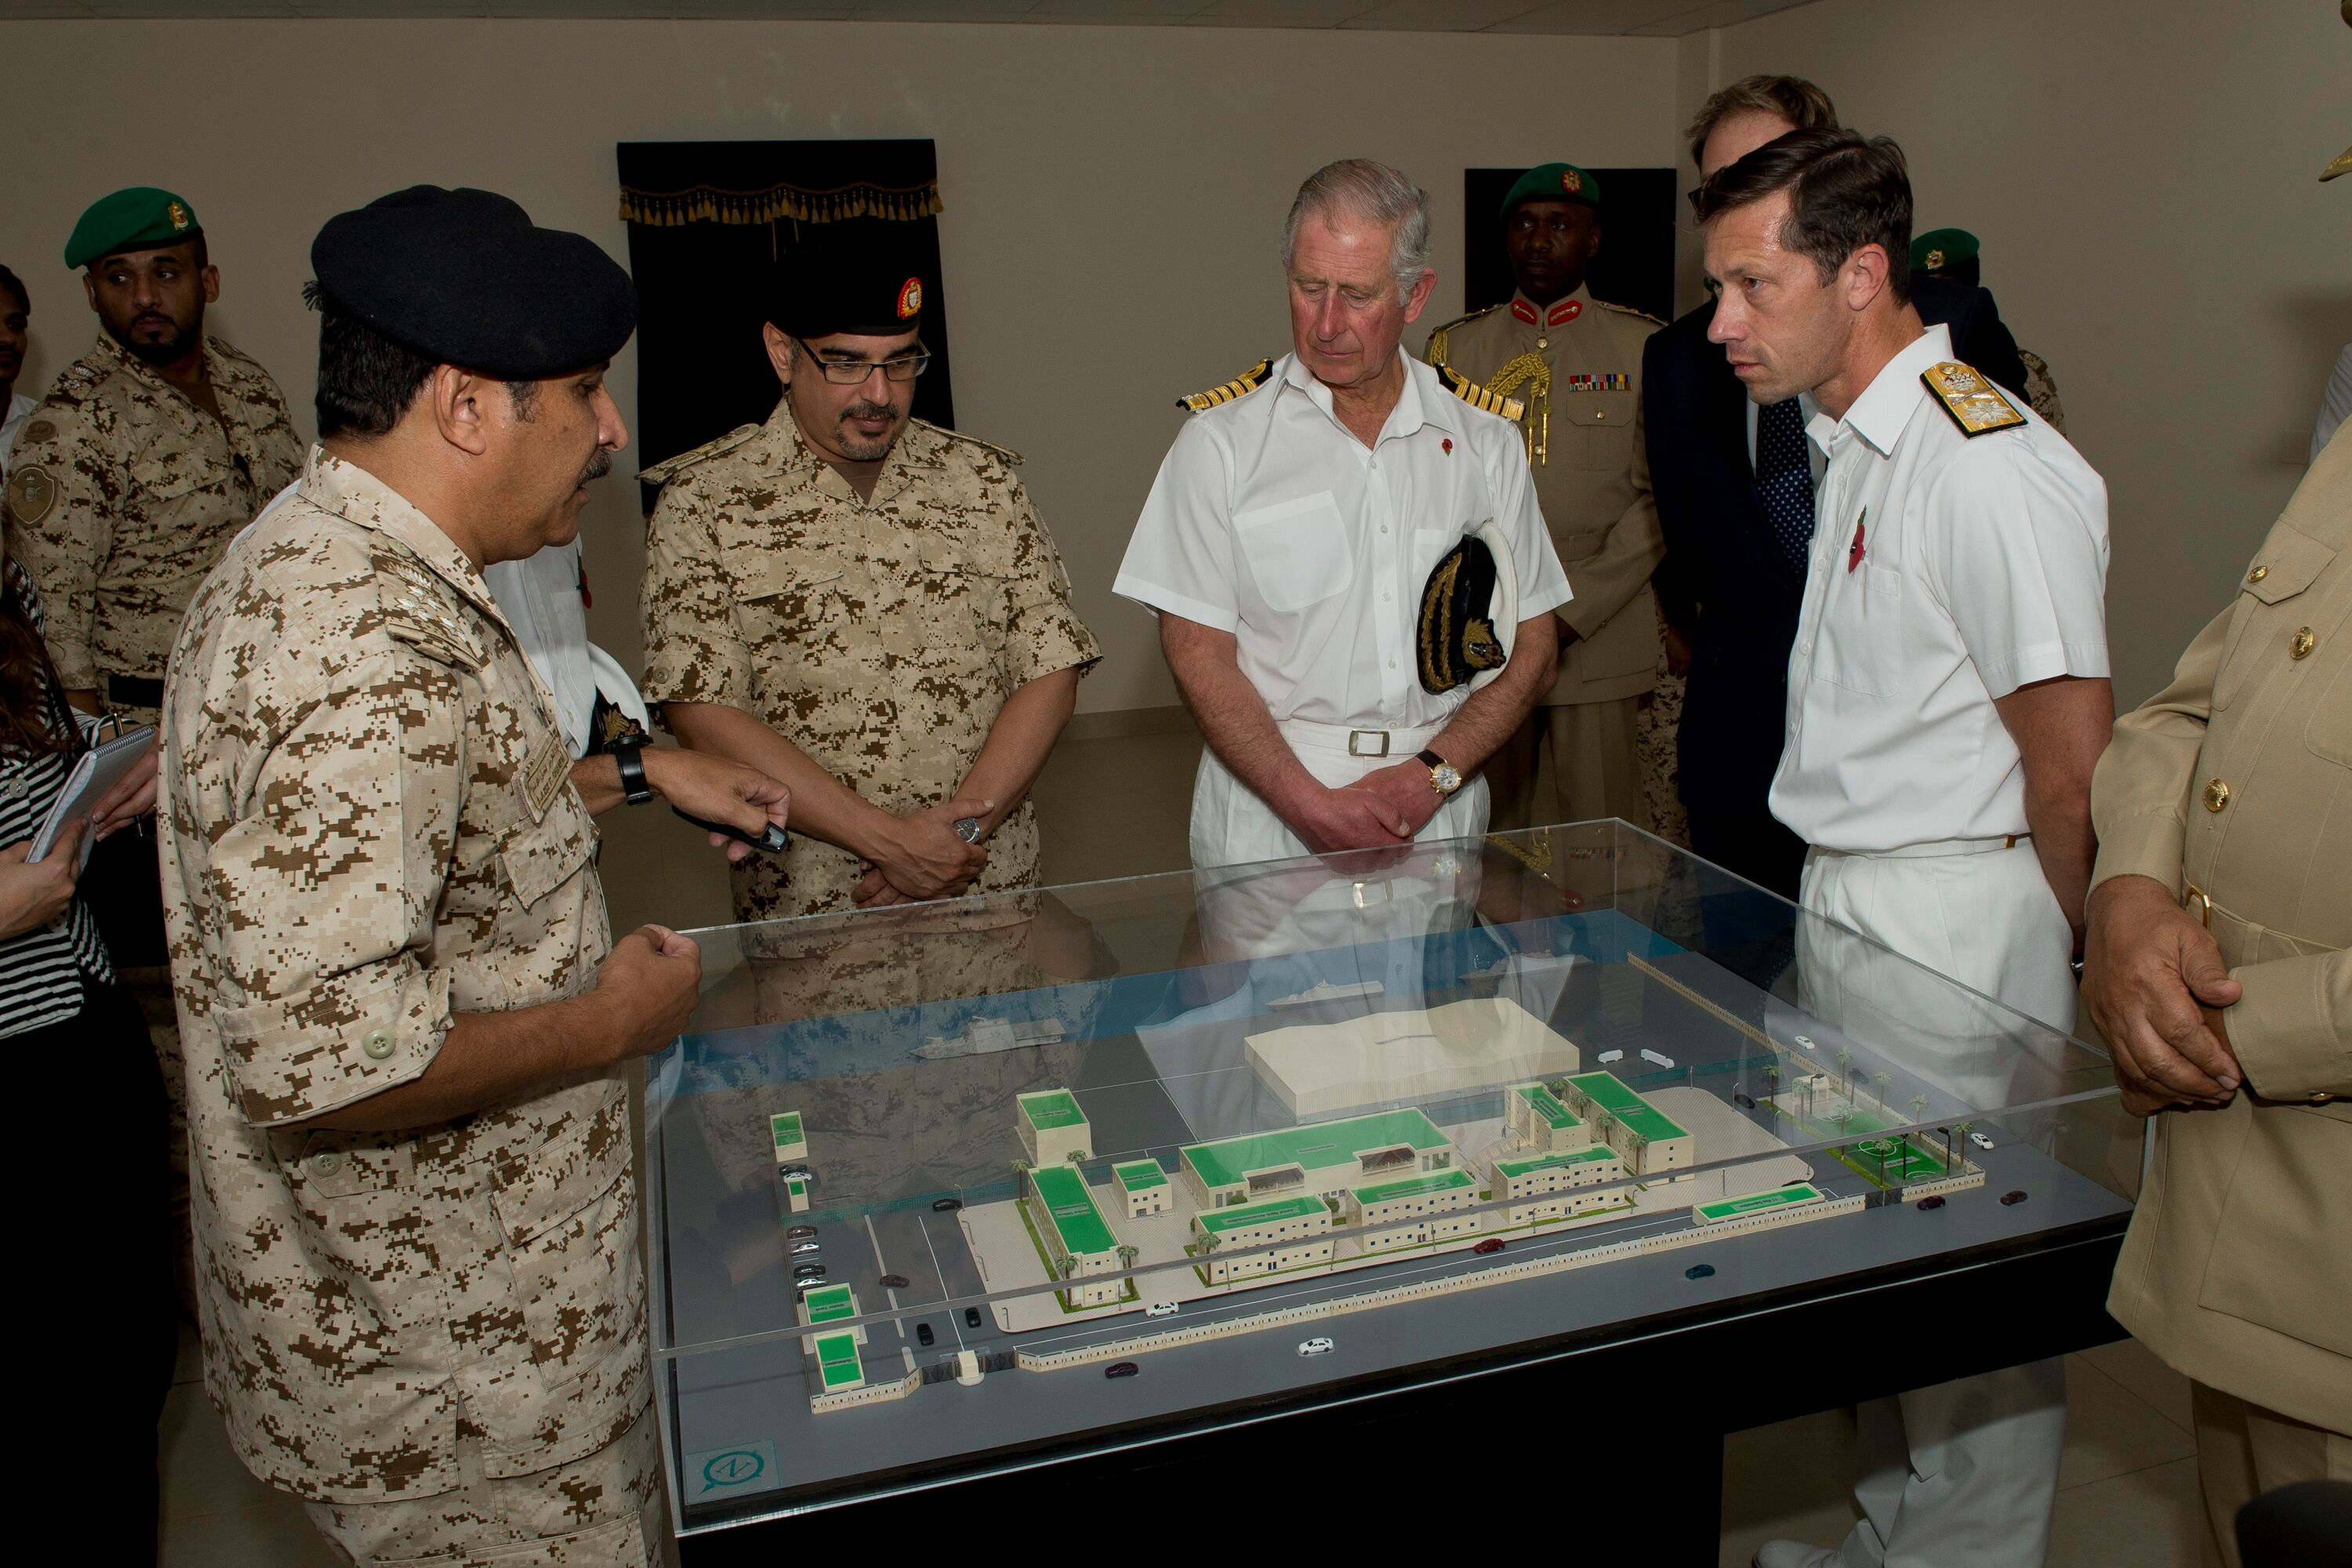 Brigadier Abdu lAziz, director of the Ministry of Military Works, left, briefs His Royal Highness Prince Salman bin Hamad bin Isa Al Khalifa, Crown Prince of Bahrain, centre left, HRH The Prince of Wales and Commodore William Warrender, right, on the layout of the site. Picture: PO G Granger US Navy